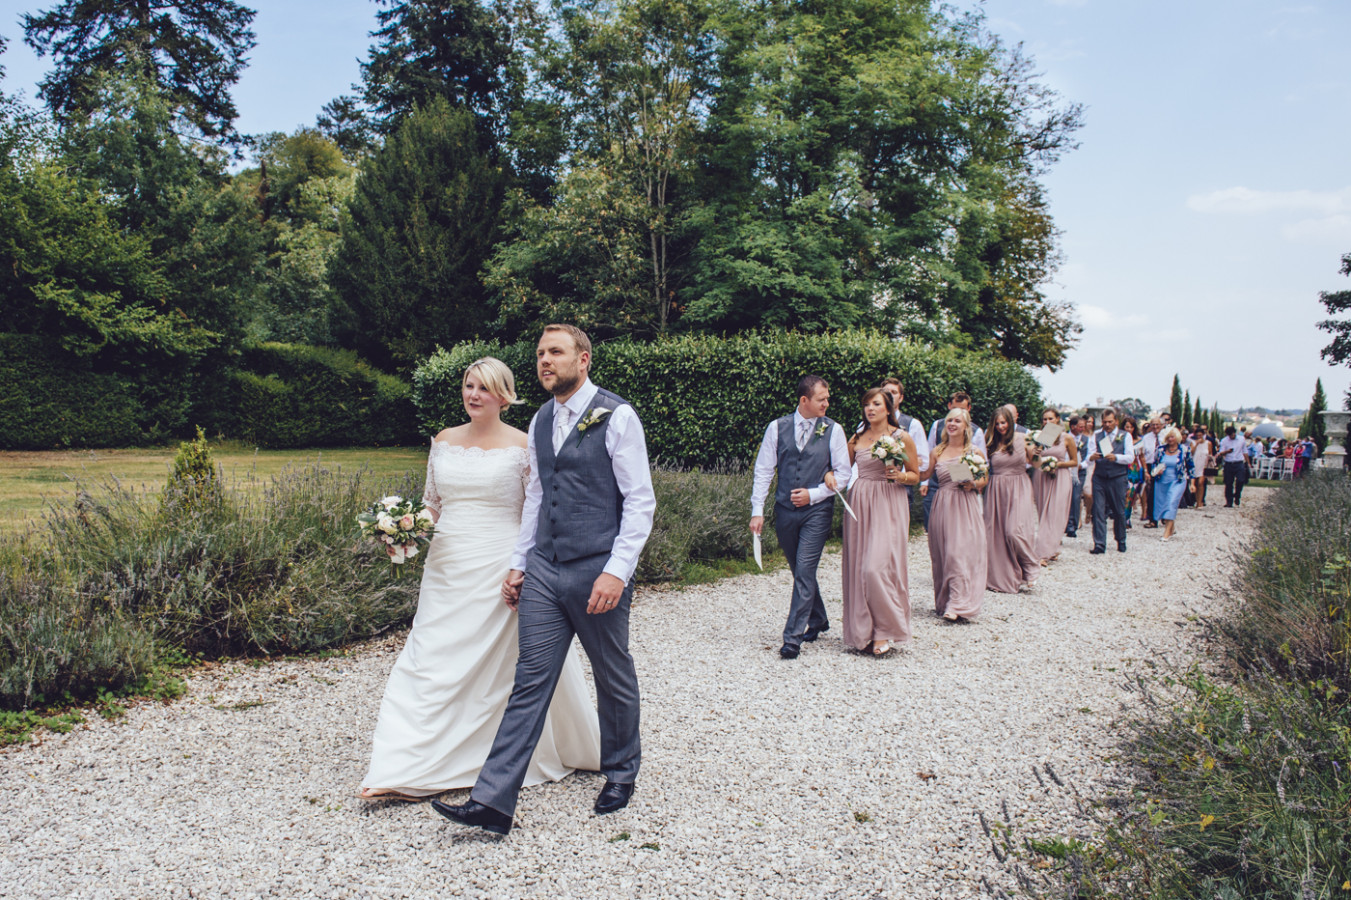 wedding photography in dordogne, france, bride, groom and wedding party walk in unison